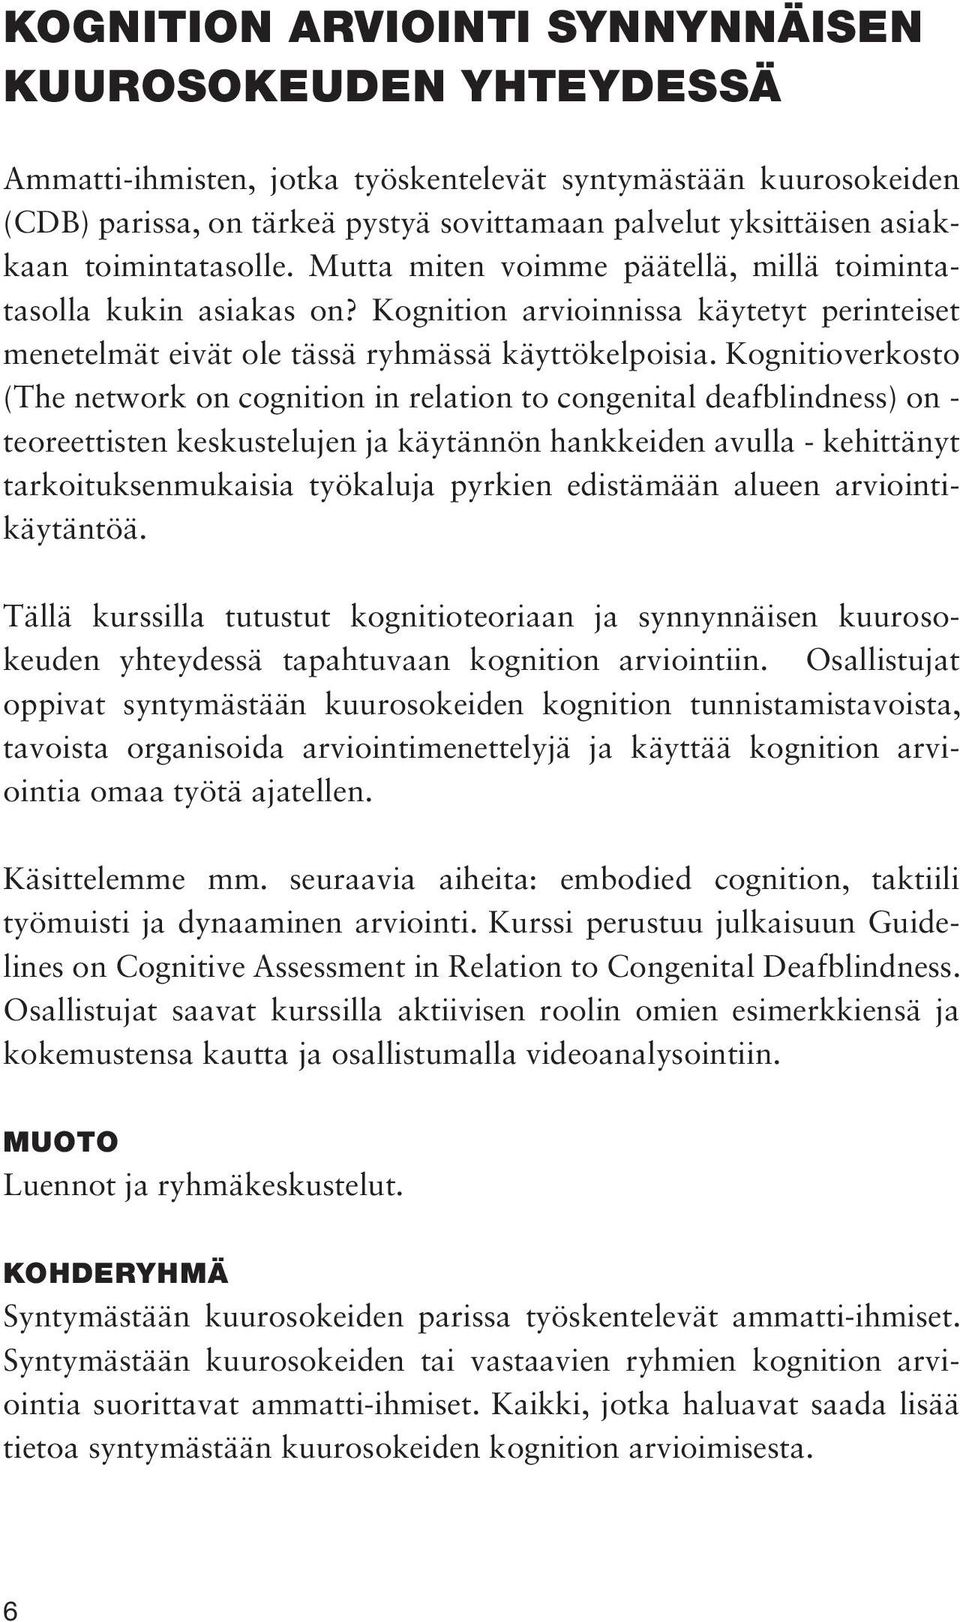 Kognitioverkosto (The network on cognition in relation to congenital deafblindness) on - teoreettisten keskustelujen ja käytännön hankkeiden avulla - kehittänyt tarkoituksenmukaisia työkaluja pyrkien